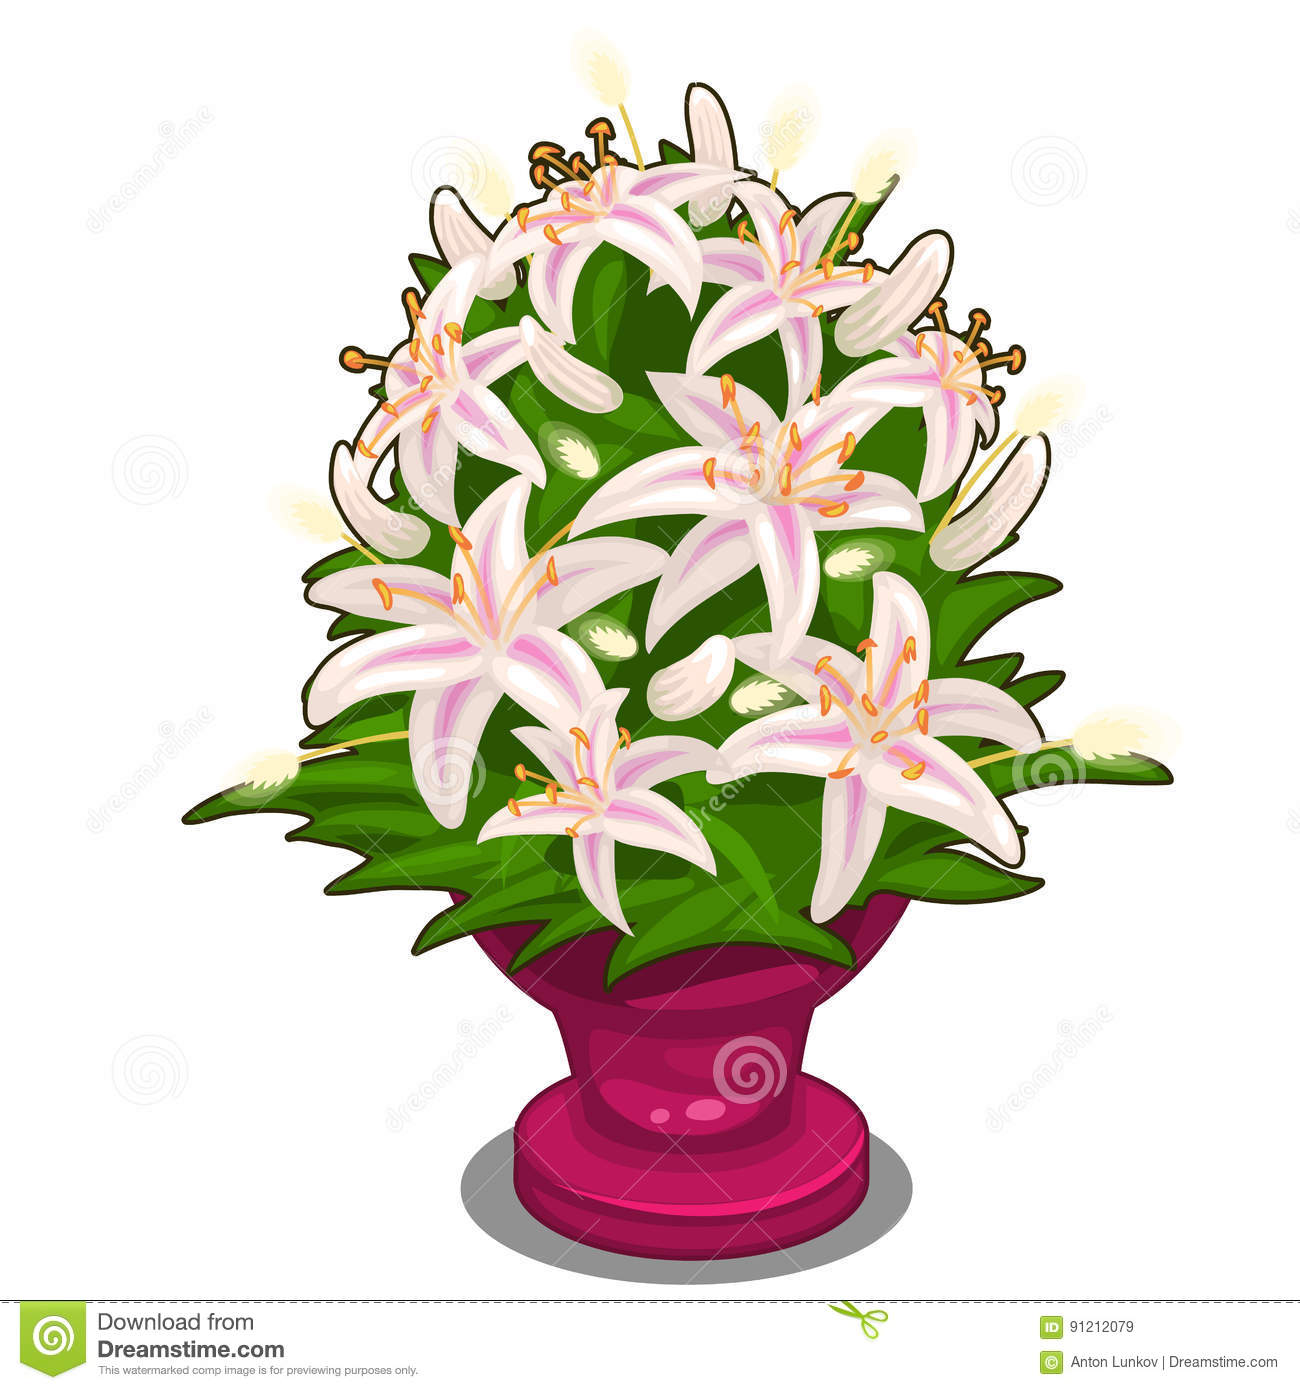 Bouquet of pink flowers in vase vector isolated stock vector bouquet of pink flowers in vase vector illustration in cartoon style on white background image isolated for your design needs mightylinksfo